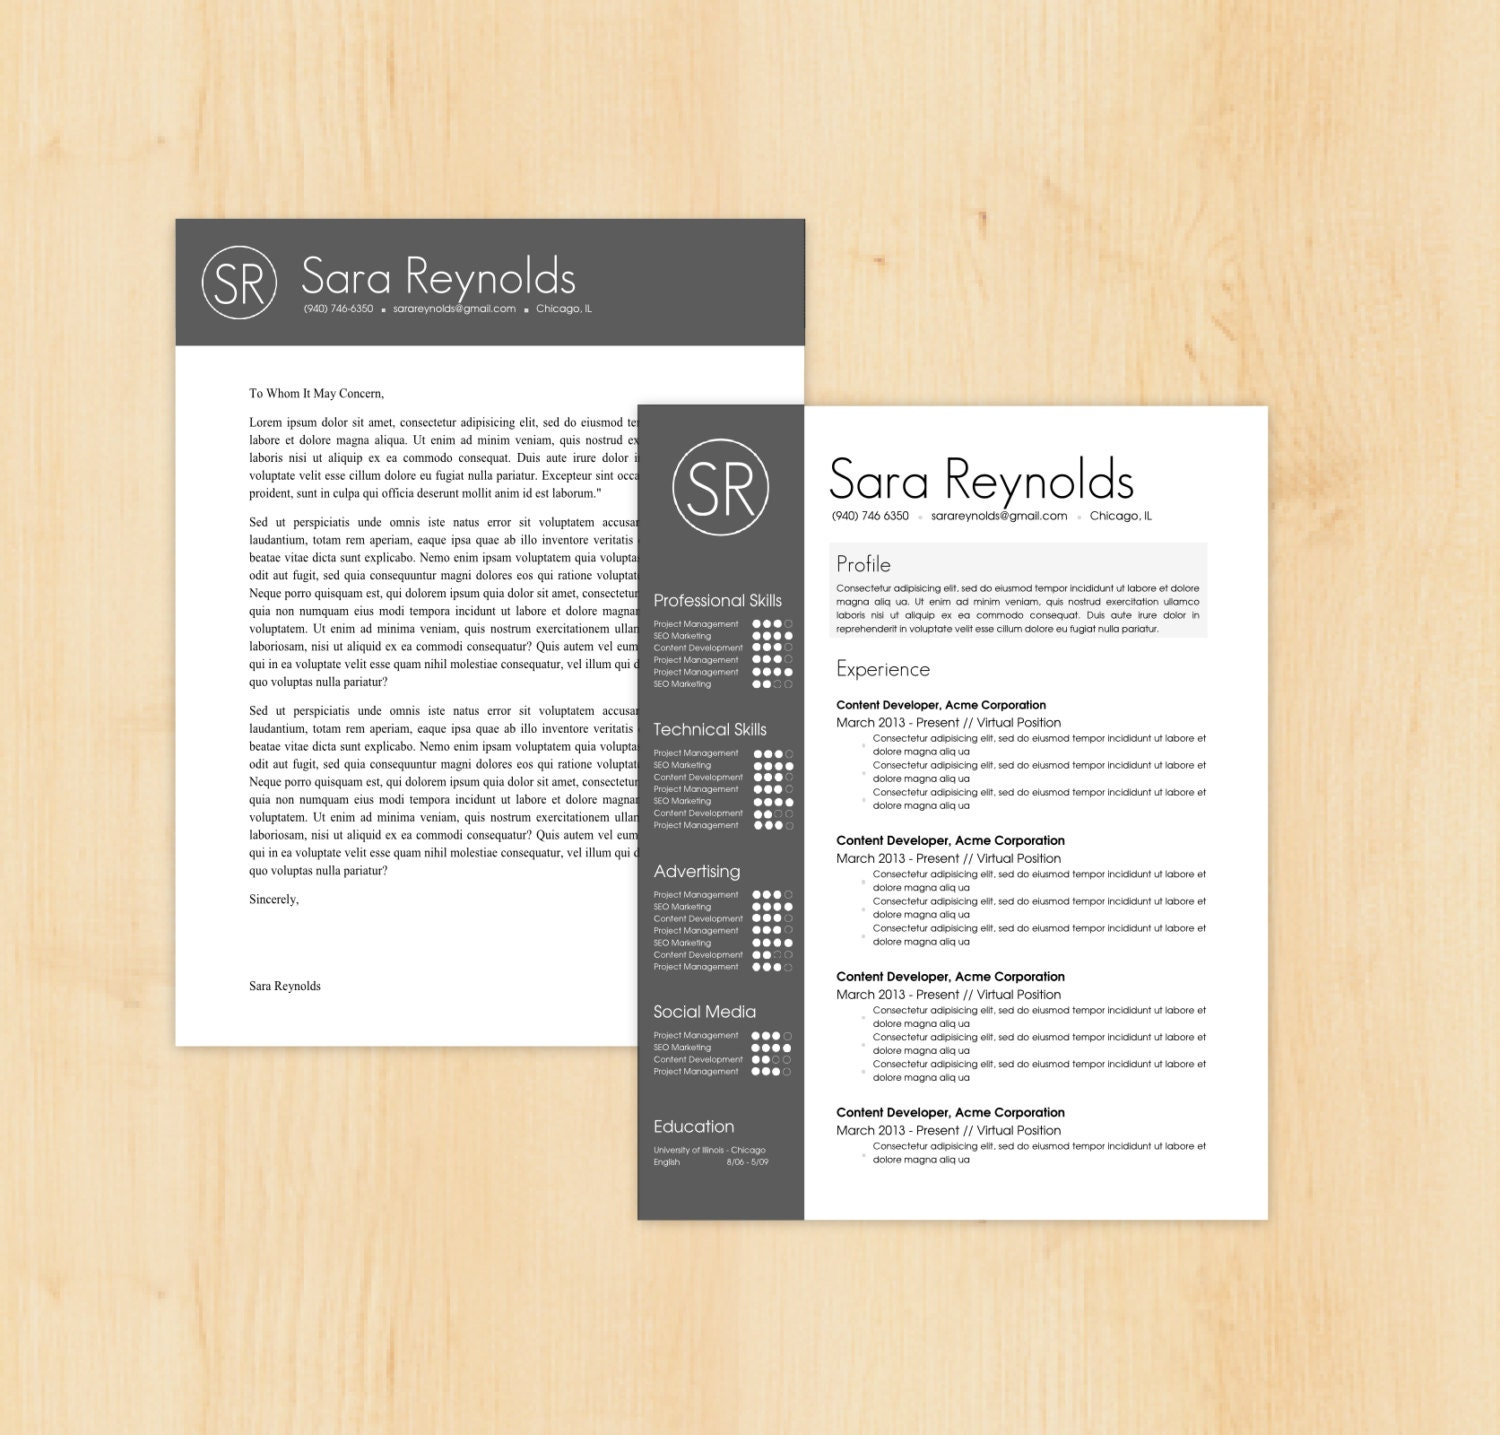 Resume Template Cover Letter Template The Sara By Phdpress: Resume Template / Cover Letter Template The Sara By PhDPress